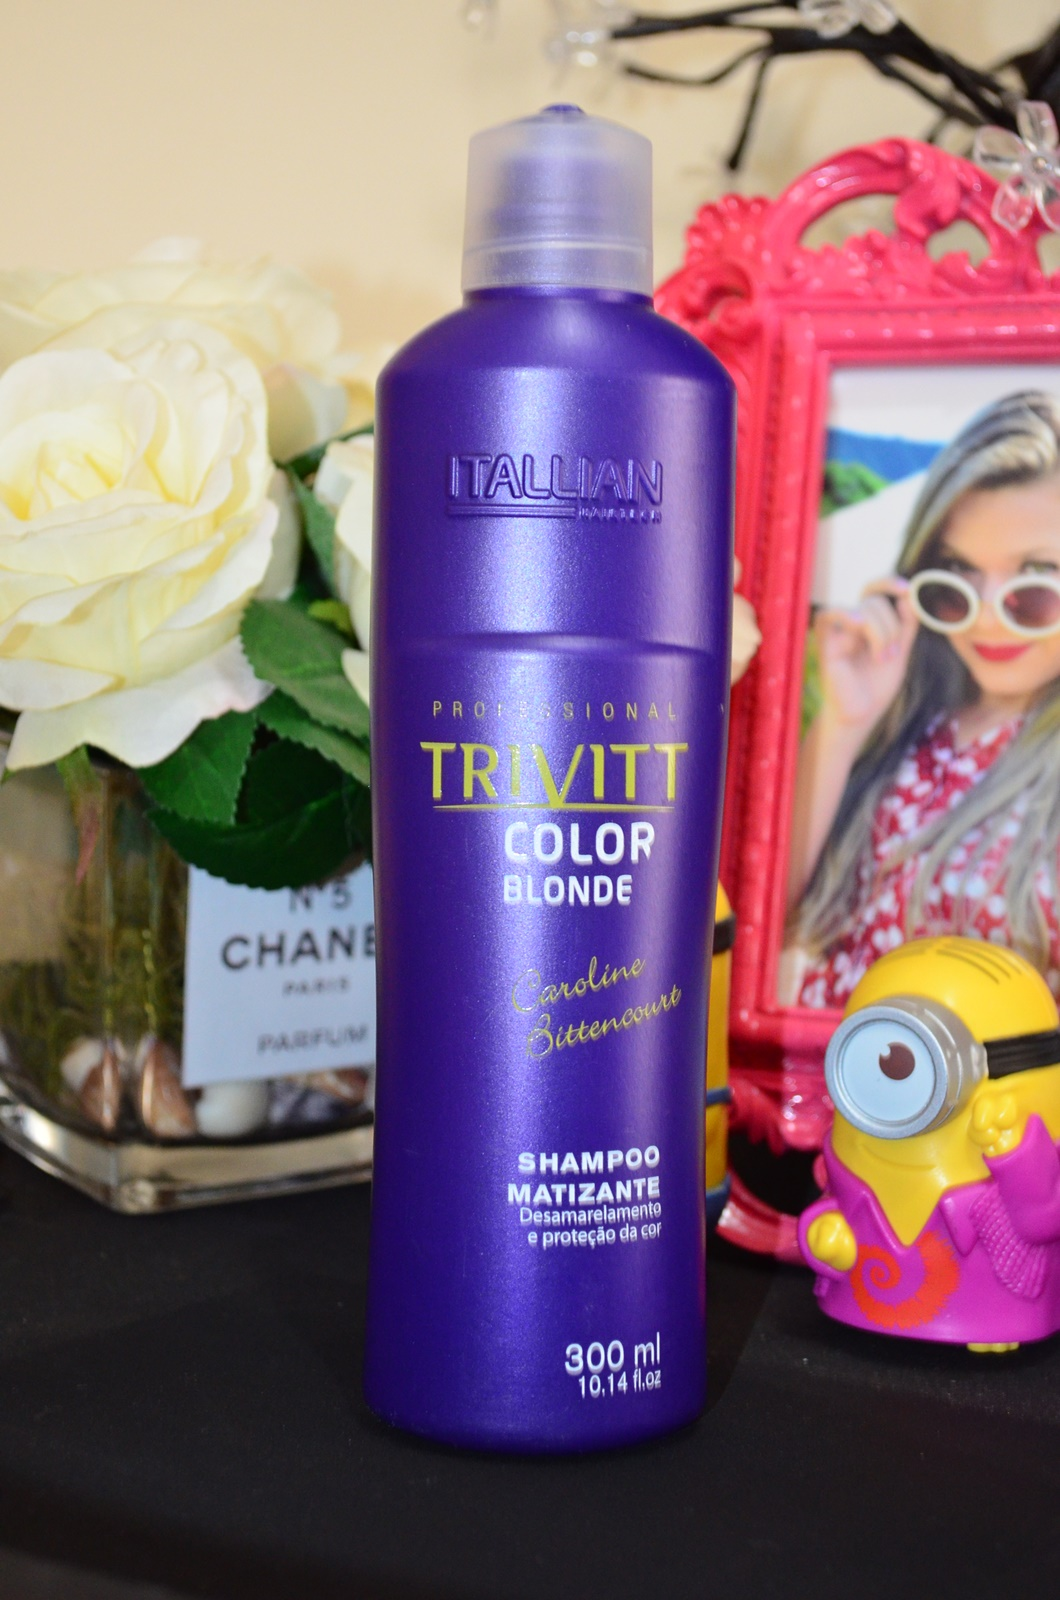 Shampoo e condicionador TRIVITT color blond - itallian hairtech 2